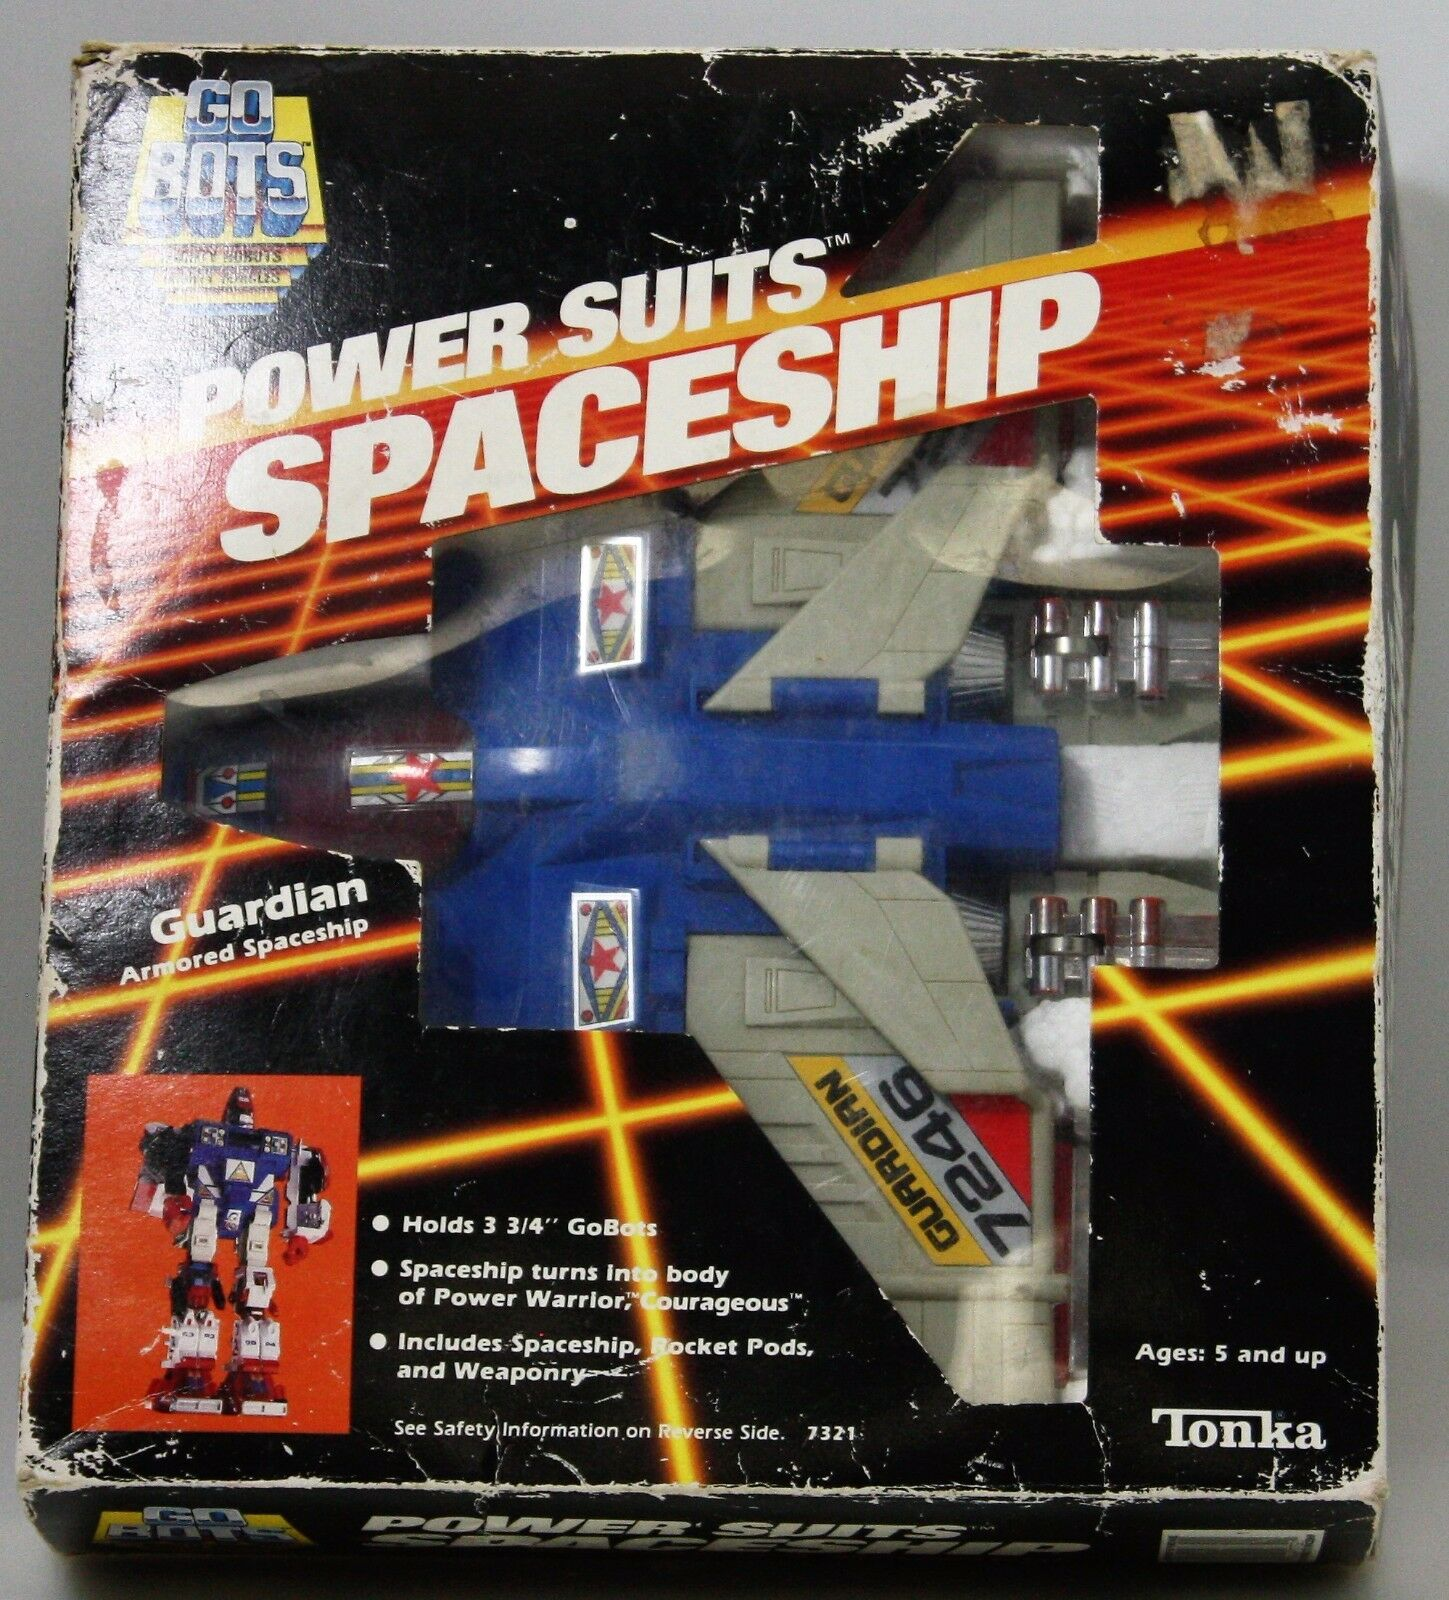 Go Bots Power Suits Spaceship GUARDIAN Tonka 1985 In Box